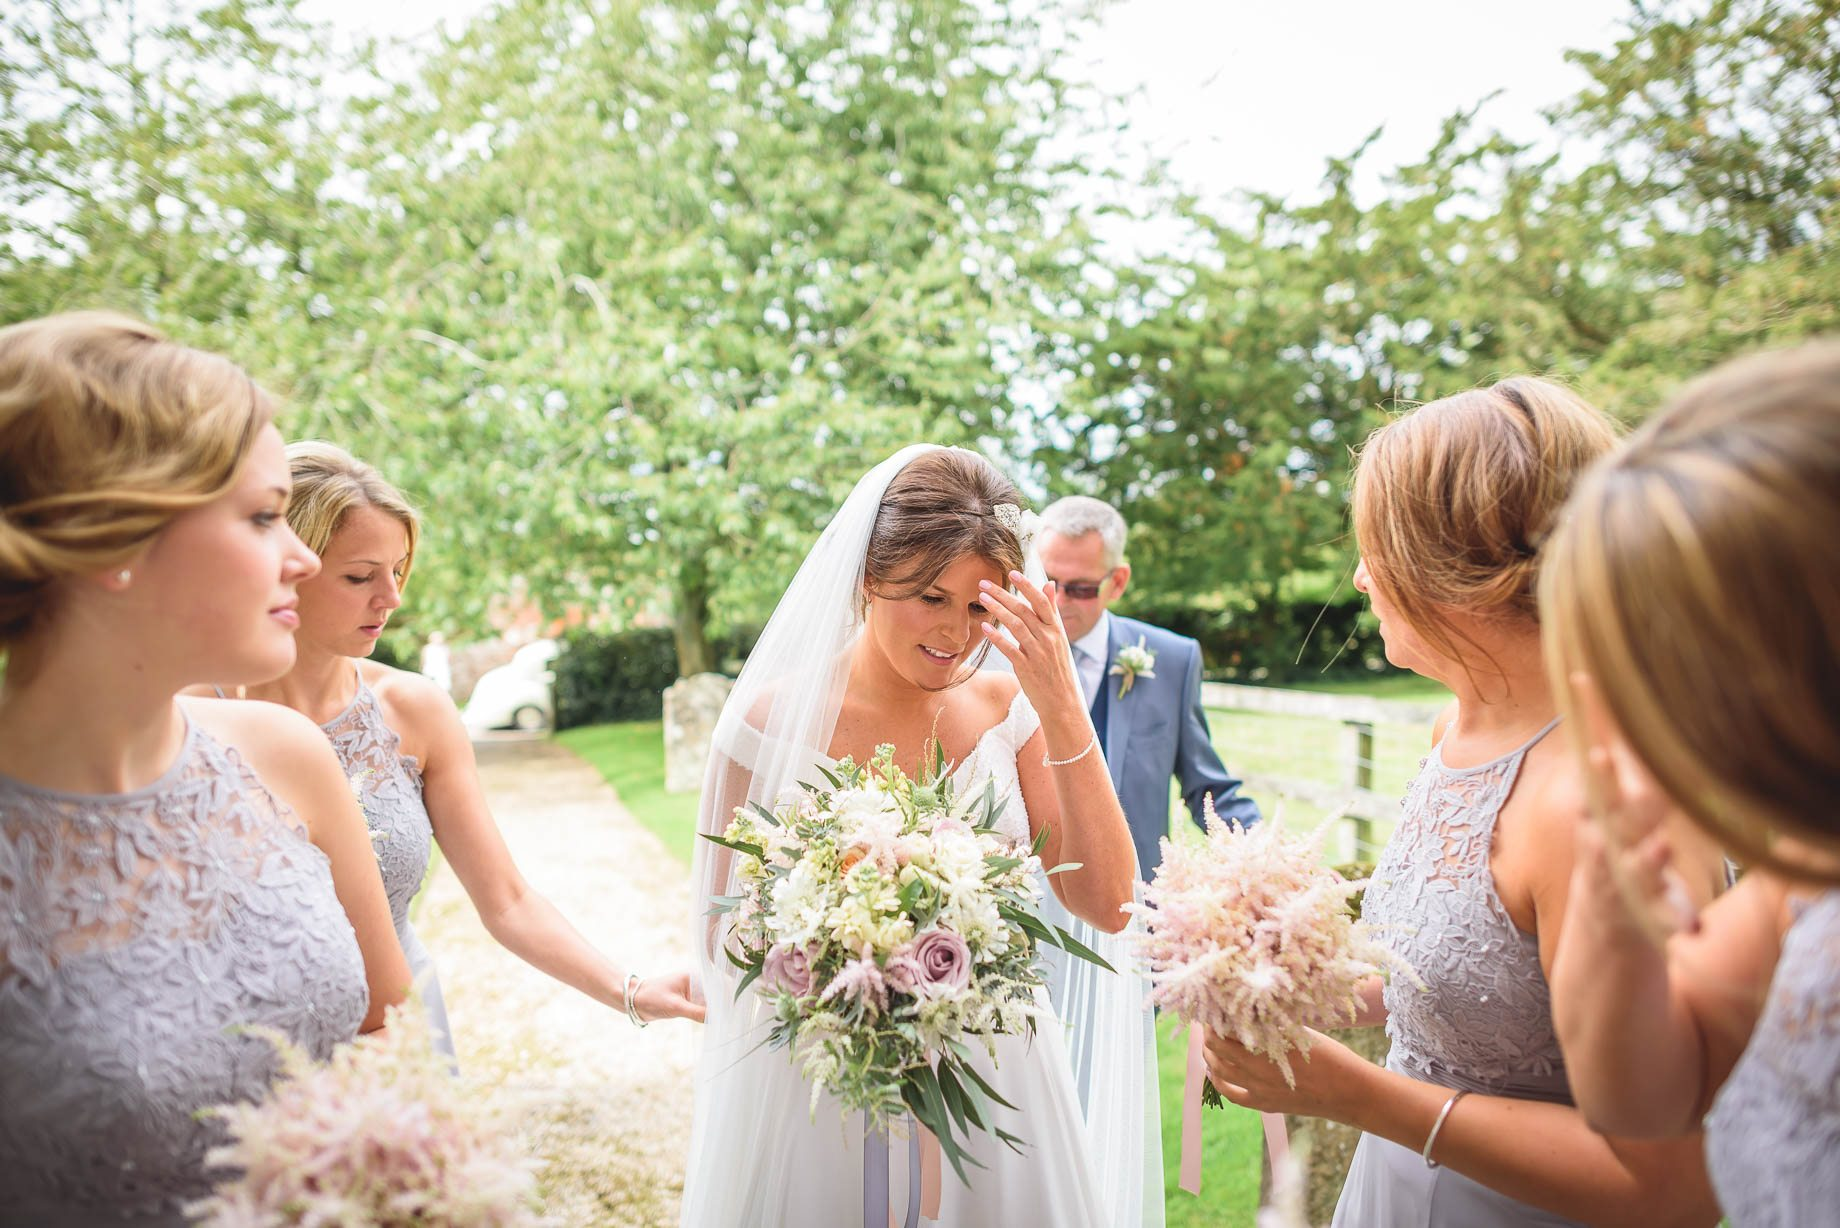 Hampshire-wedding-photography-in-Romsey-Guy-Collier-Photography-Daisy-and-Jools-84-of-204